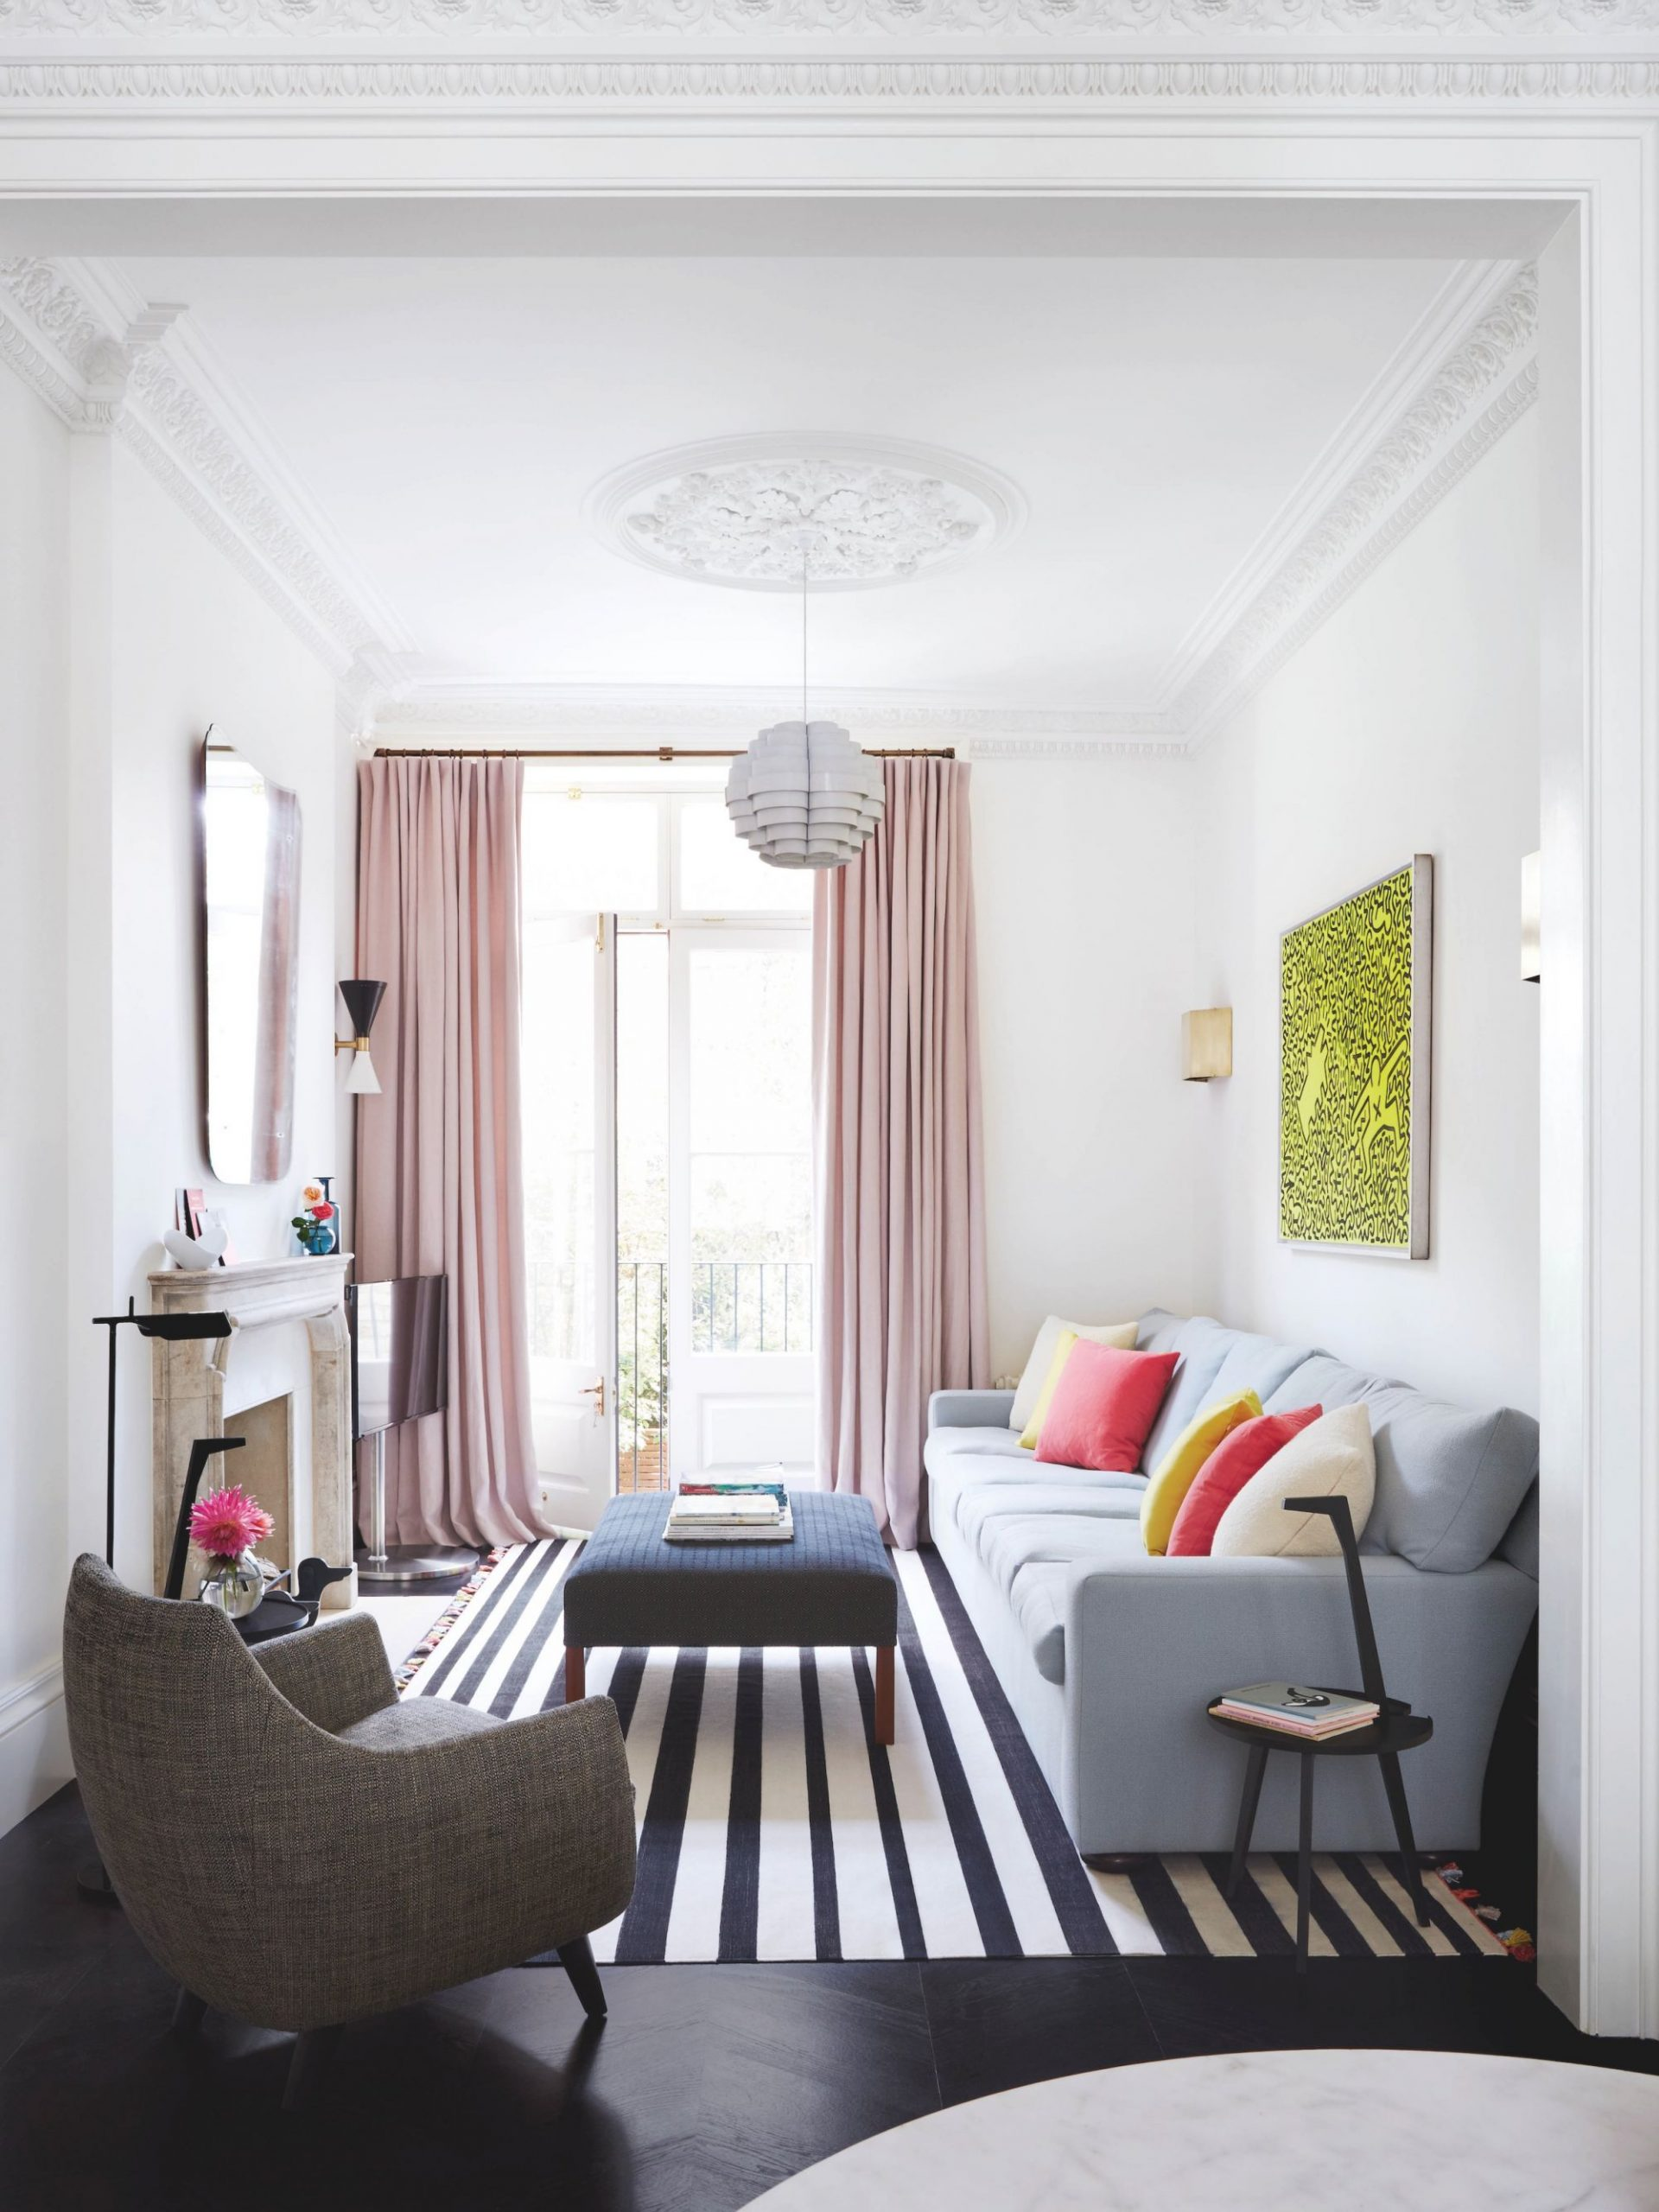 50 Best Small Living Room Design Ideas For 2019 with regard to Unique Ideas Of Decorating Small Living Room